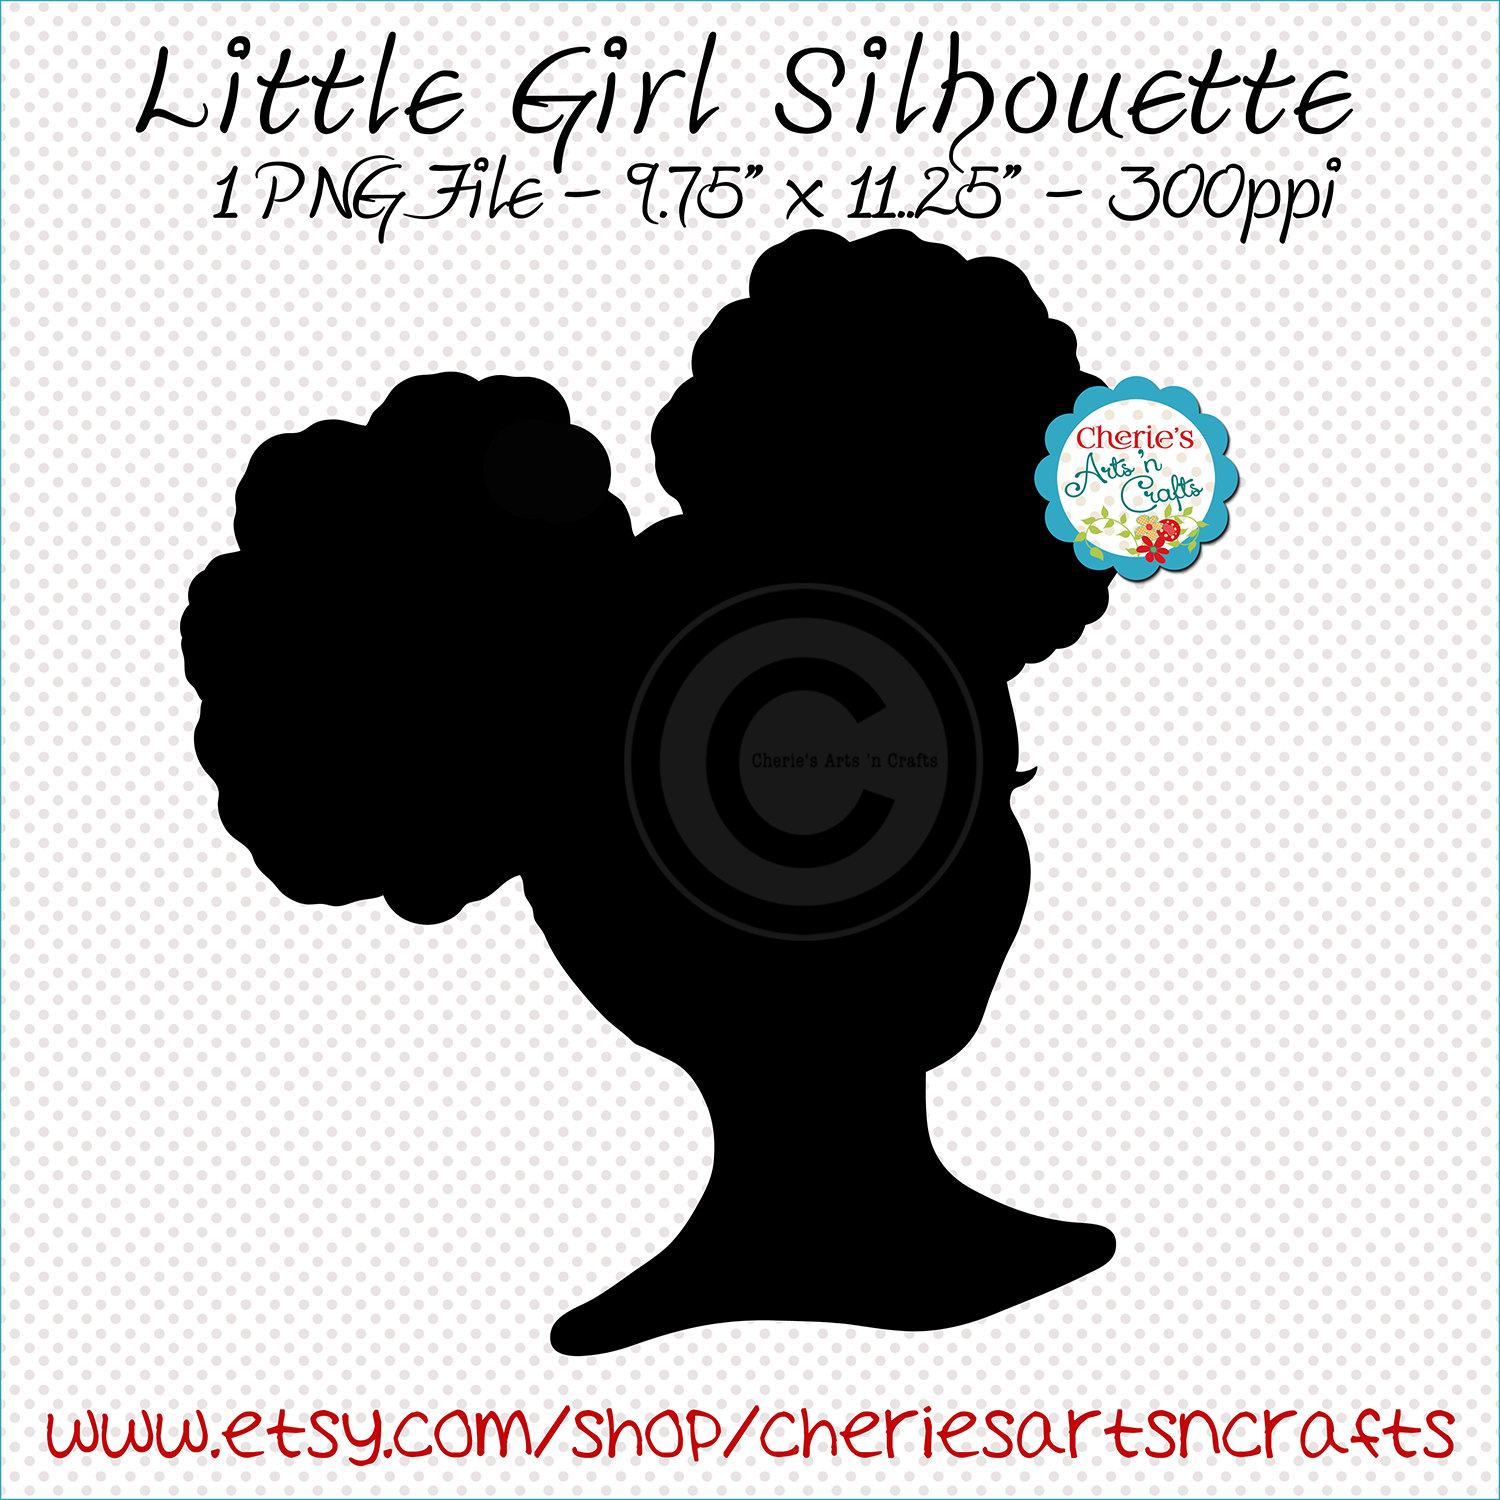 Natural Girl Silhouette.